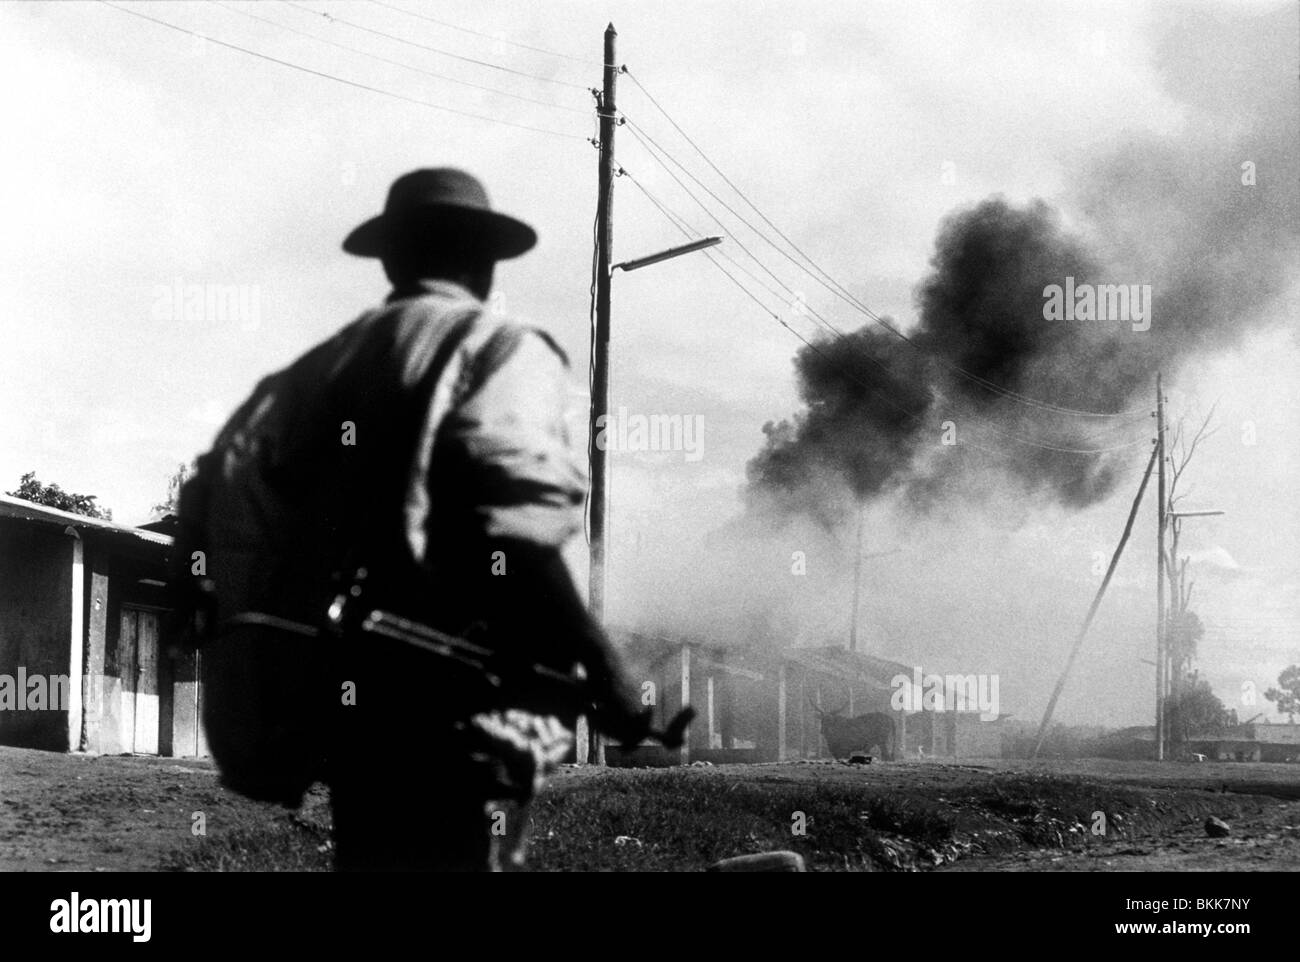 A shell lands nearby (from a Hutu gun placement) as the RPF troops advance to Kigali during the Rwandan genocide - Stock Image